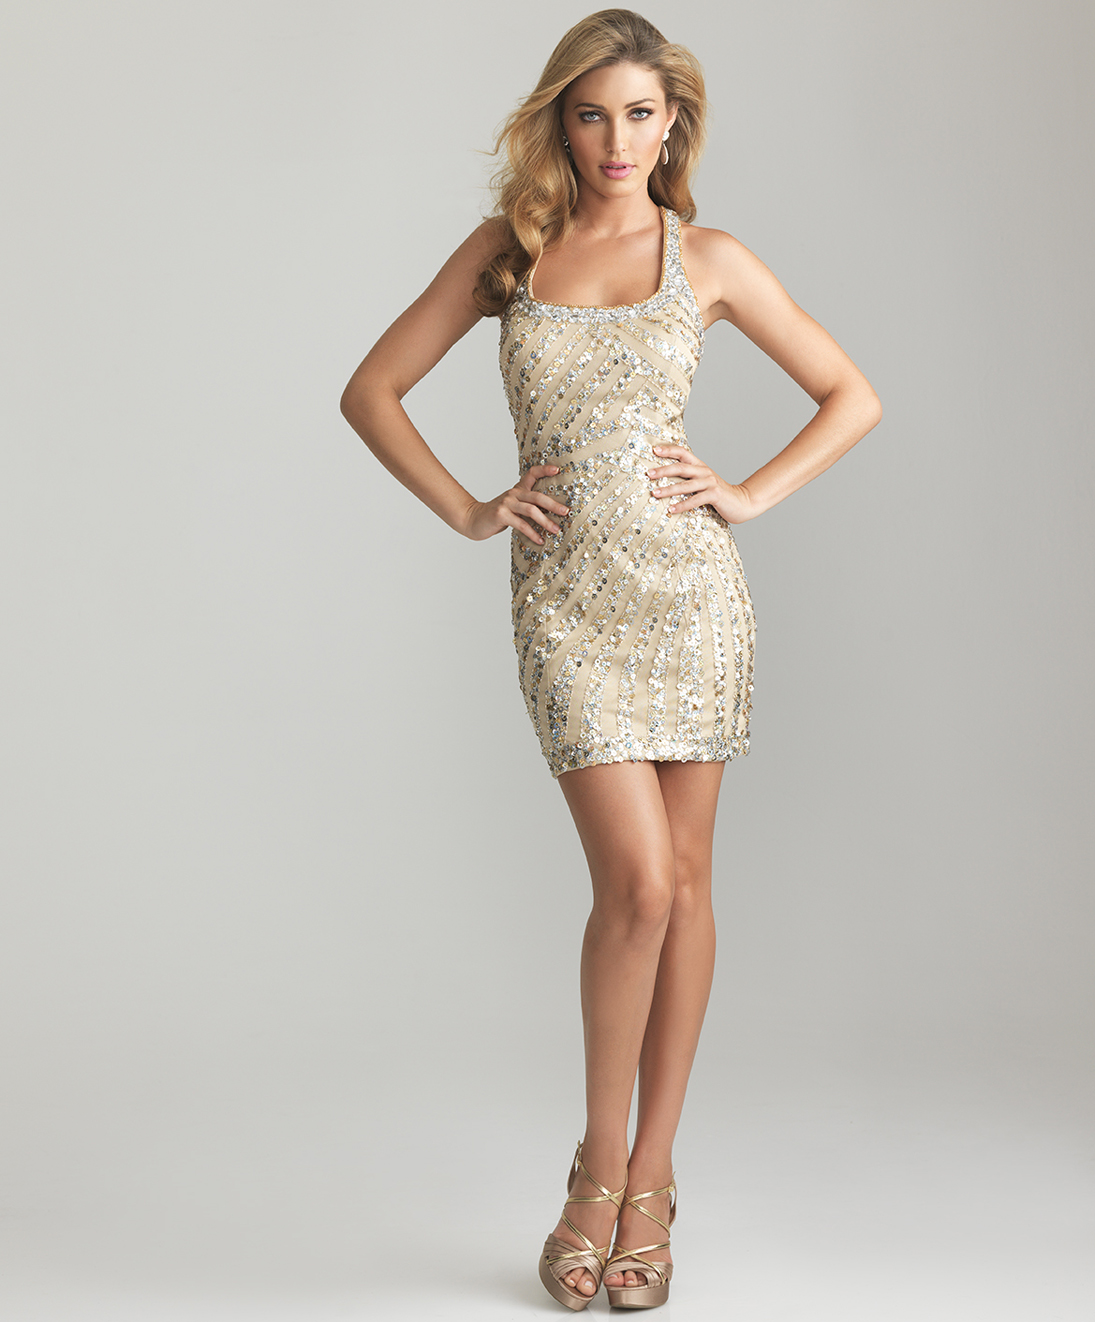 Ladies With Short Dresses - Best Choice